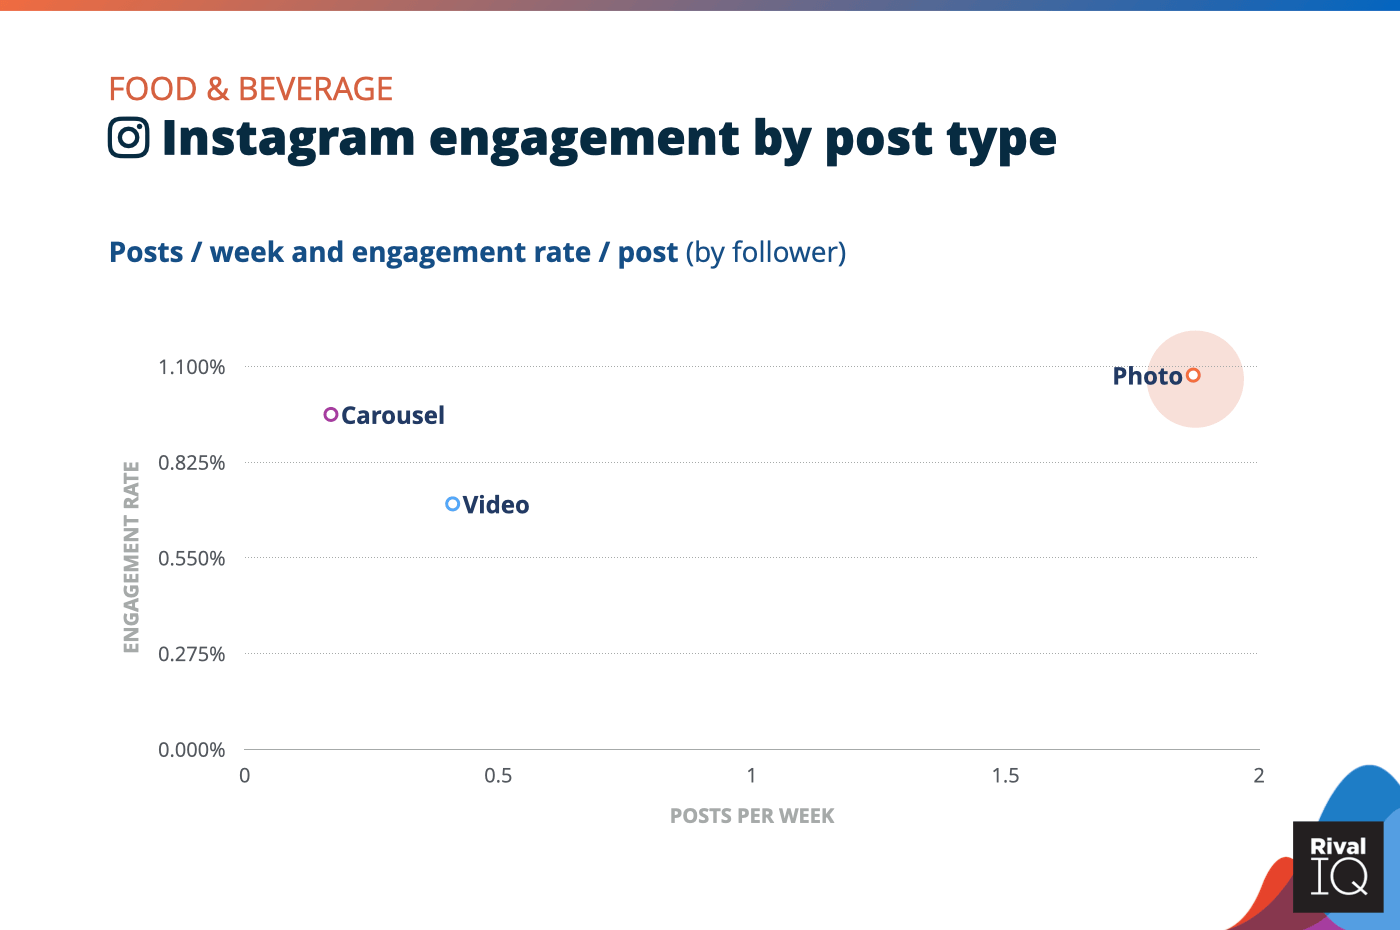 Chart of Instagram posts per week and engagement rate by post type, Food & Beverage